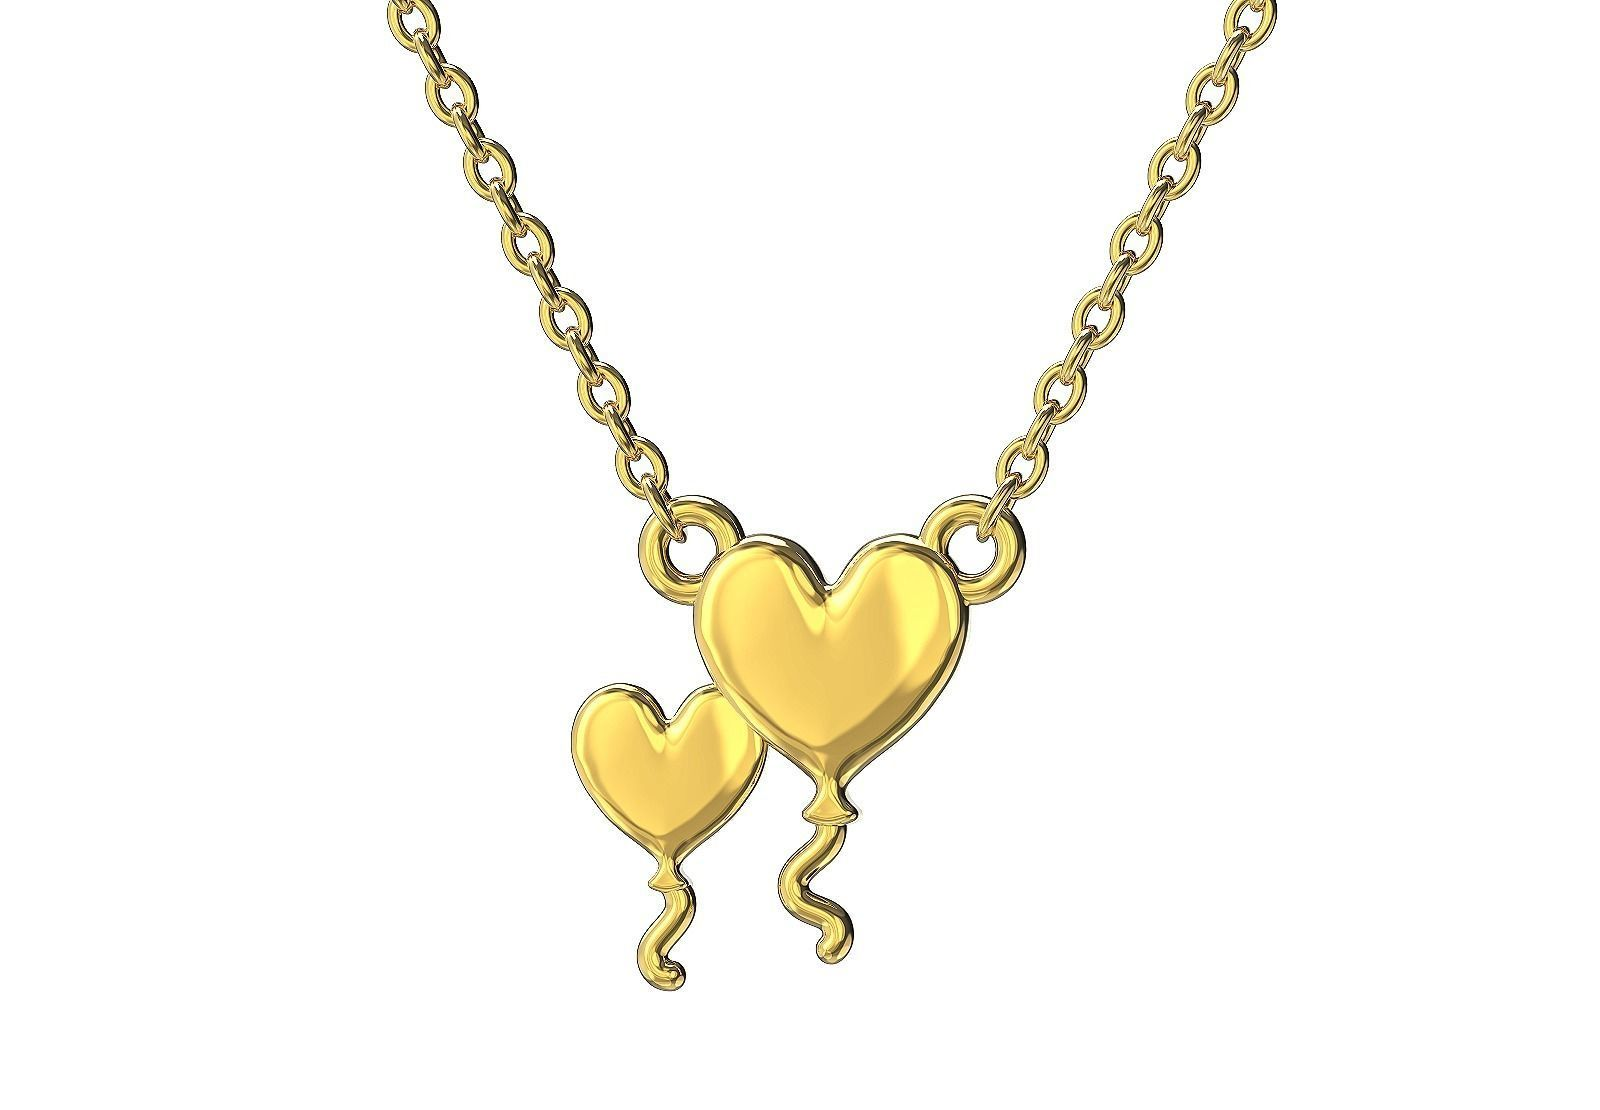 Heart balloons necklace